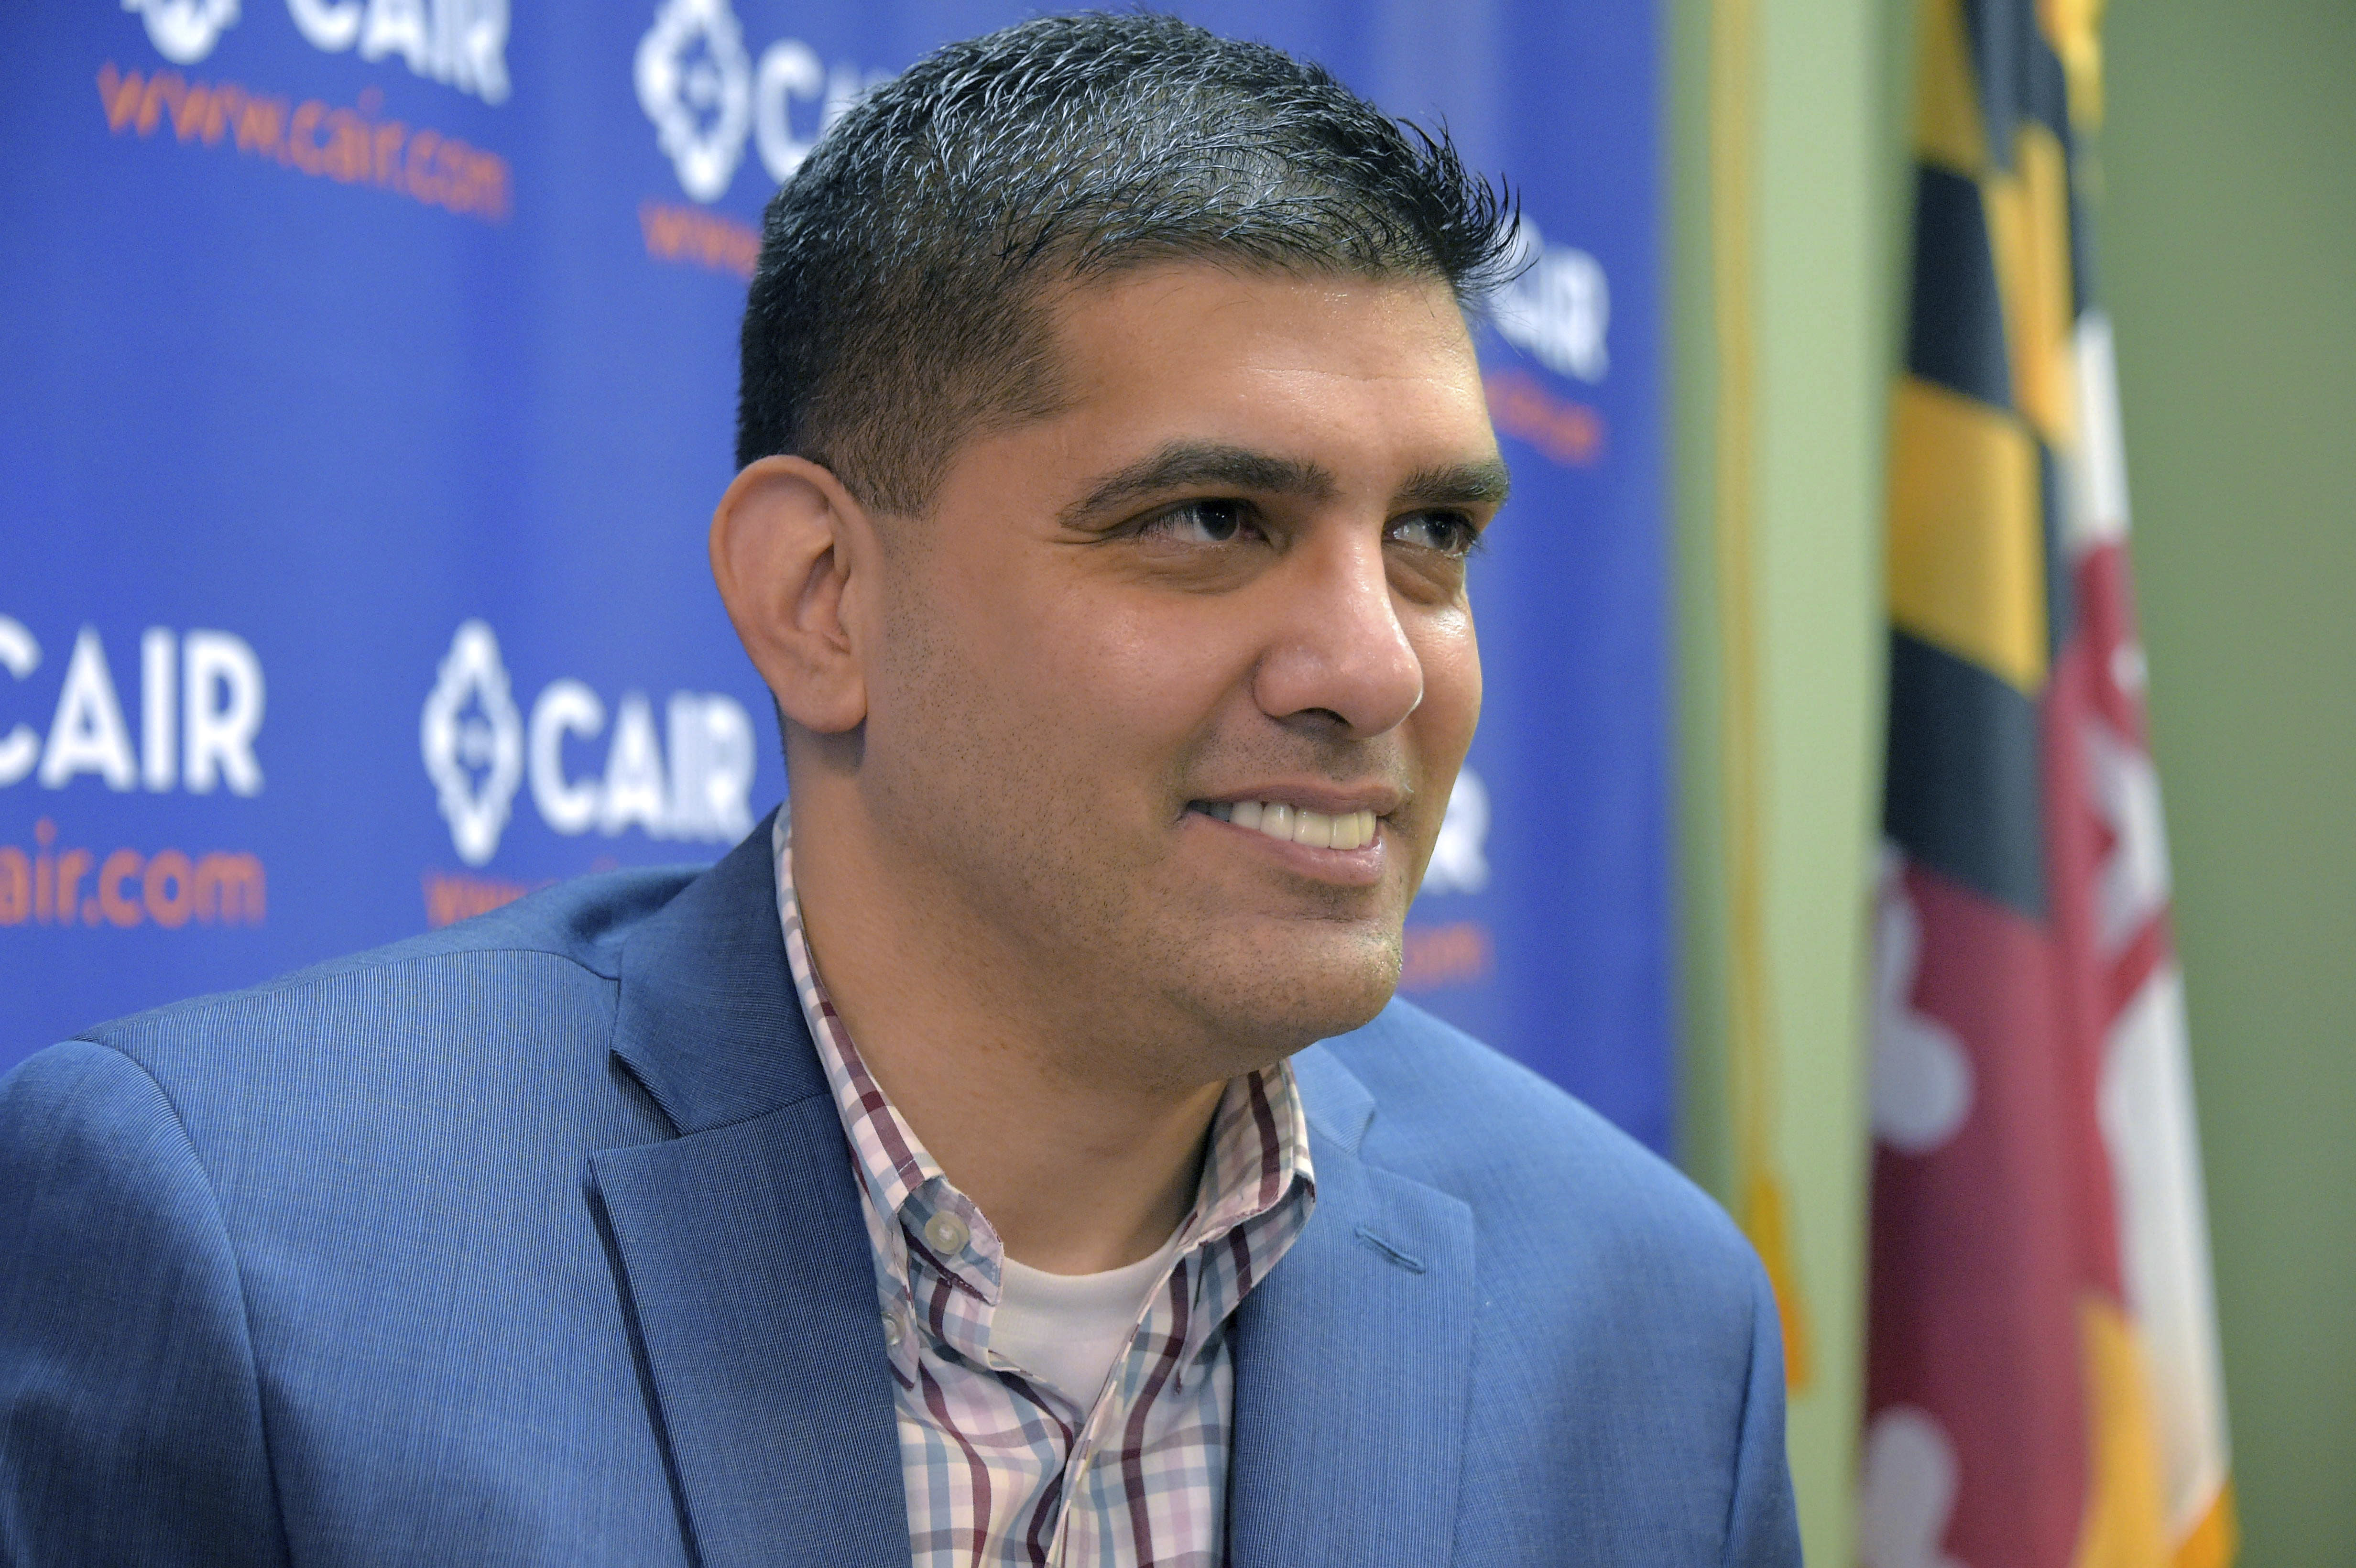 Saqib Ali talks at a press conference Wednesday, Jan. 9, 2019, in Catonsville, Md., announcing a legal challenge to Maryland's anti-BDS Executive Order. Maryland's ban on contracting with businesses that boycott Israel tramples on the First Amendment rights the software engineer who advocates for Palestinians, a Muslim civil rights group claims in a lawsuit filed Wednesday. (Karl Merton Ferron/The Baltimore Sun via AP)